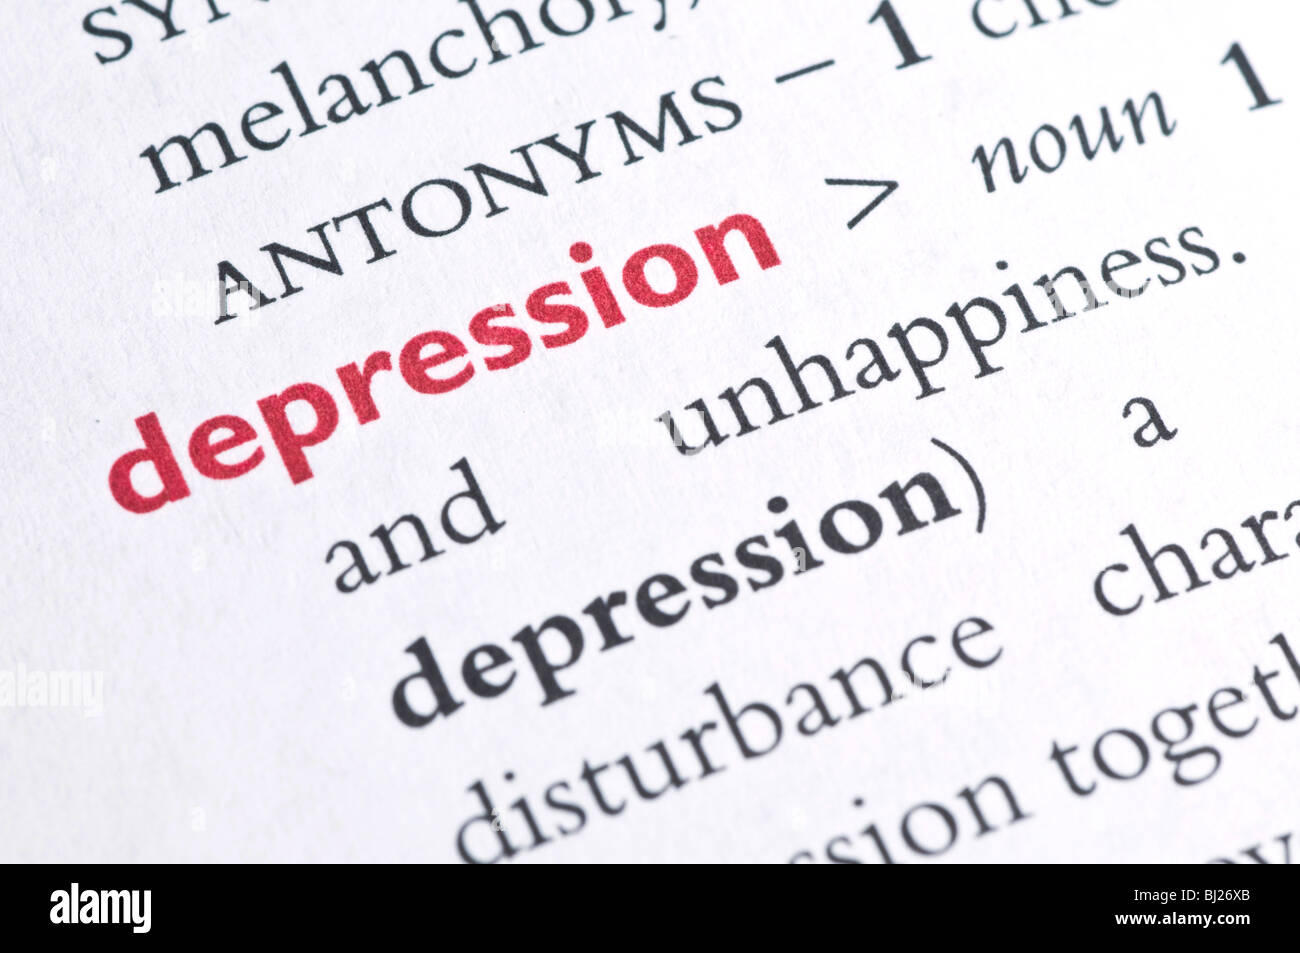 dictionary definition of depression stock photo: 28323523 - alamy